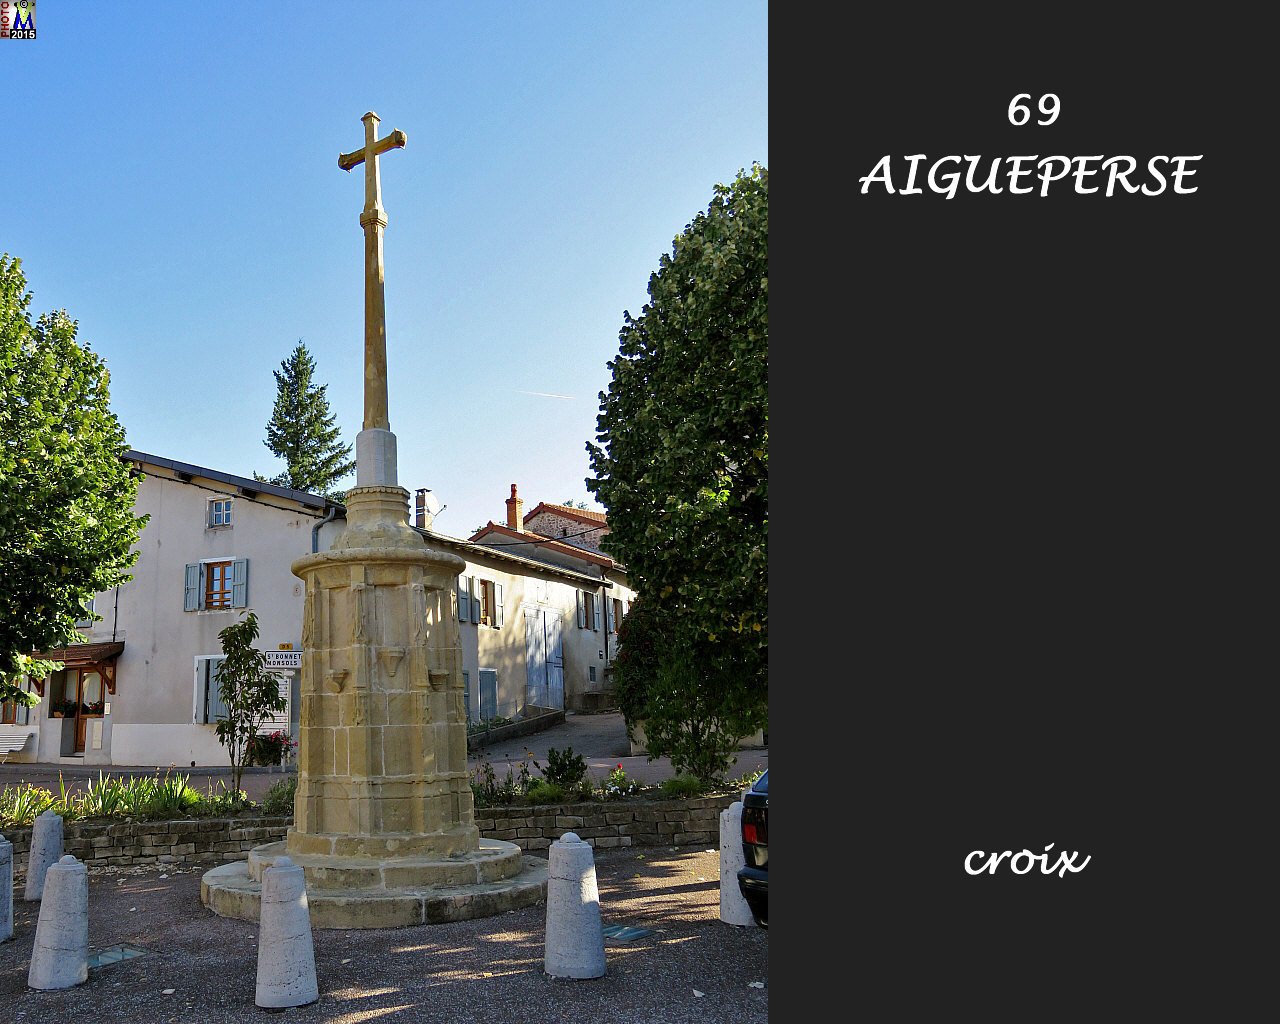 69AIGUEPERSE_croix_100.jpg